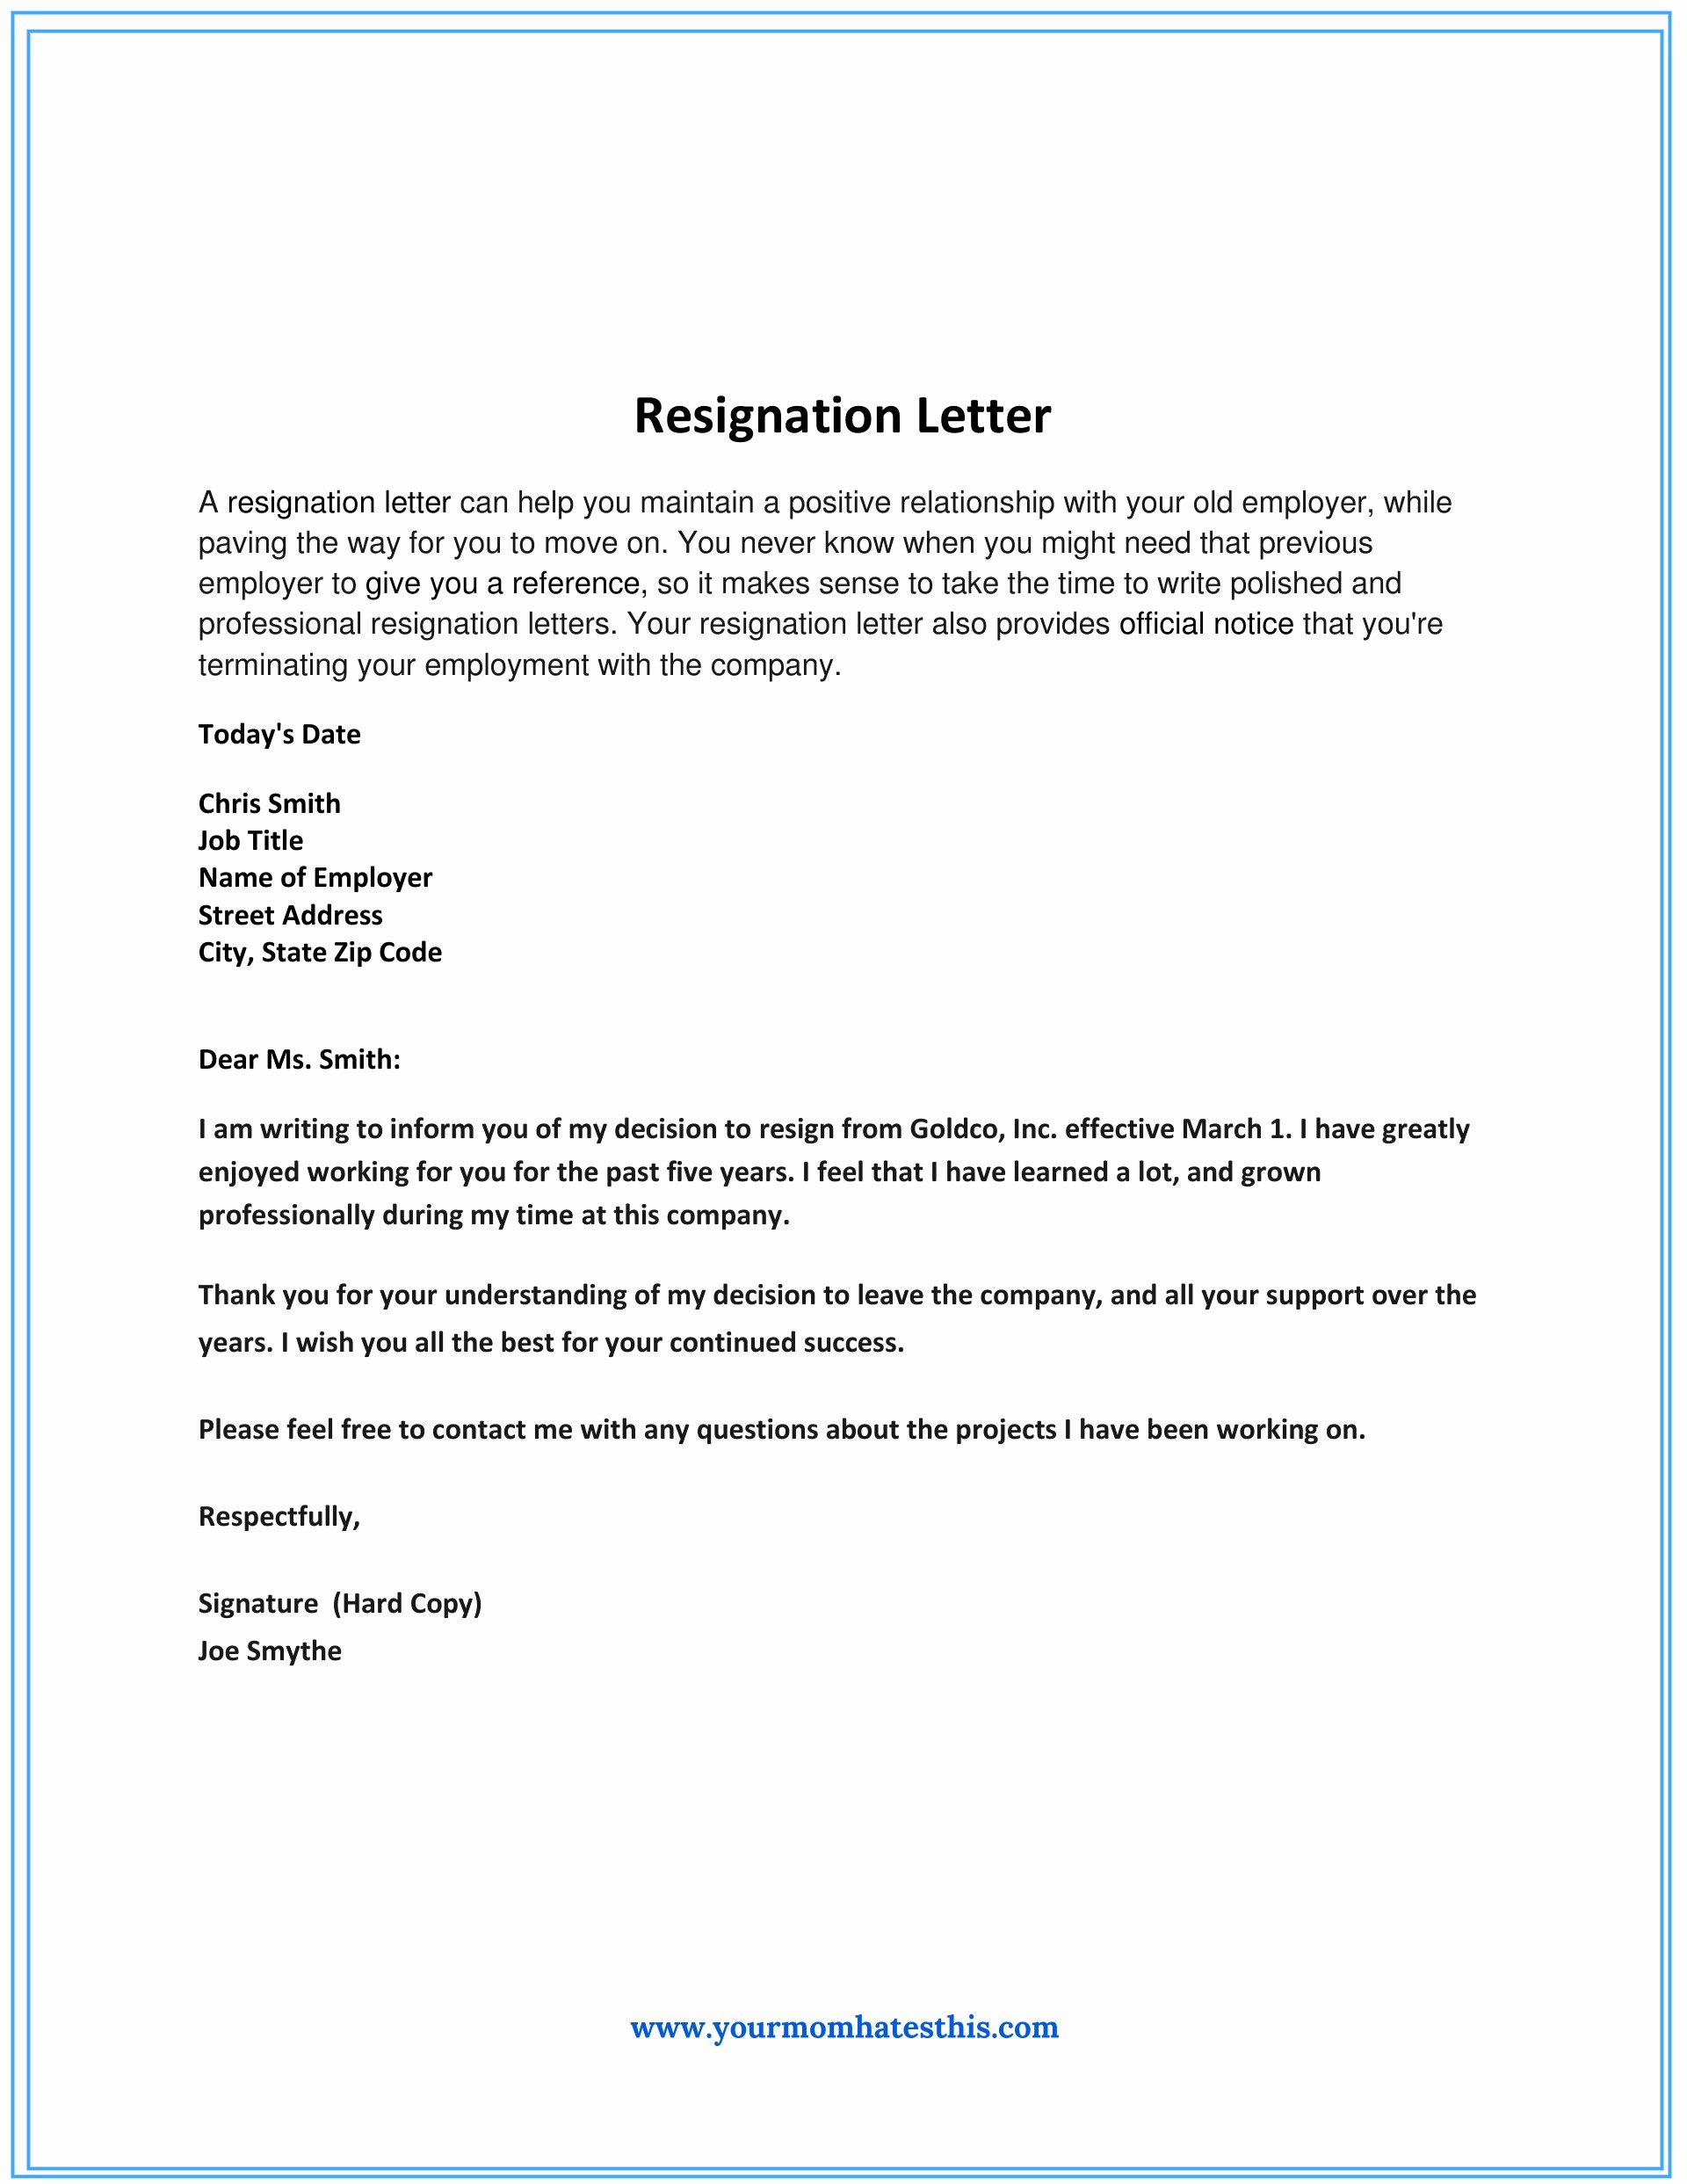 Letter Of Resignation Email Template Inspirational Dos and Don'ts for A Resignation Letter